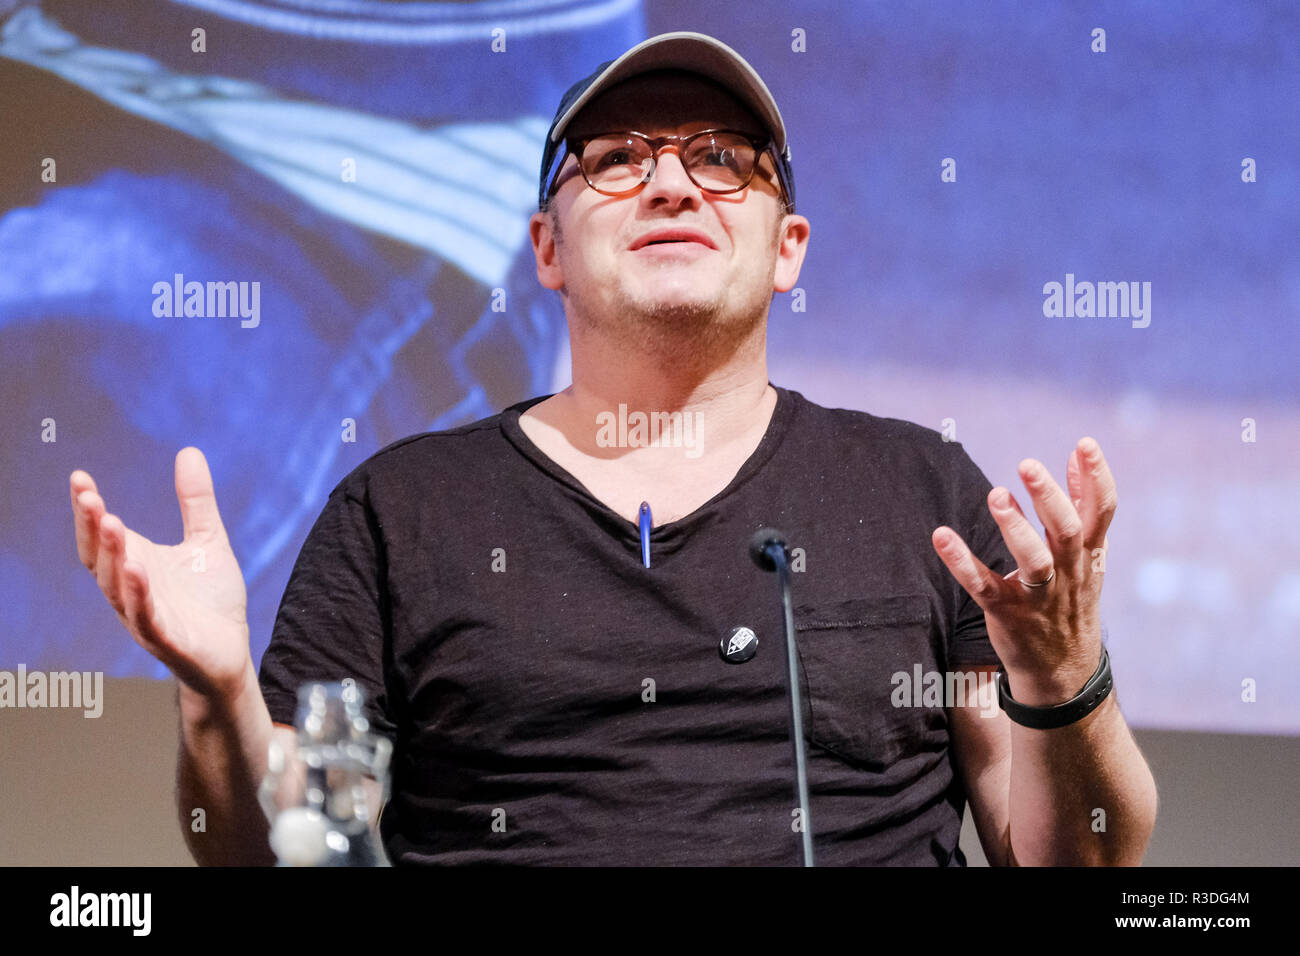 Filmmaker Lenny Abrahamson appears on Mark Kermode Live in 3D on Monday 19 November 2018 held at BFI Southbank, London. Pictured: Lenny Abrahamson. - Stock Image